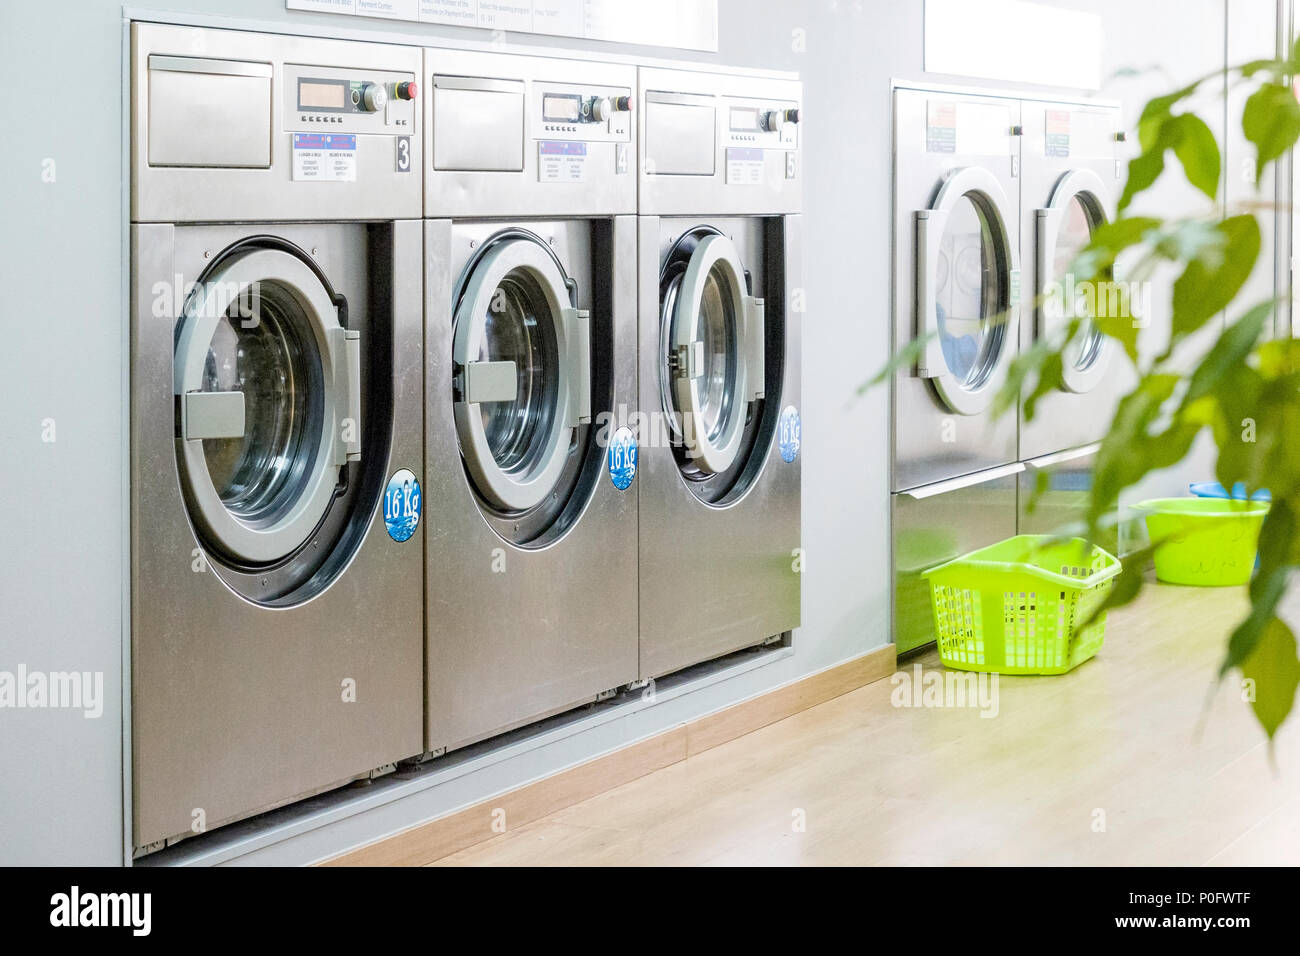 Public laundry with modern, silver washing machines in a row - Stock Image